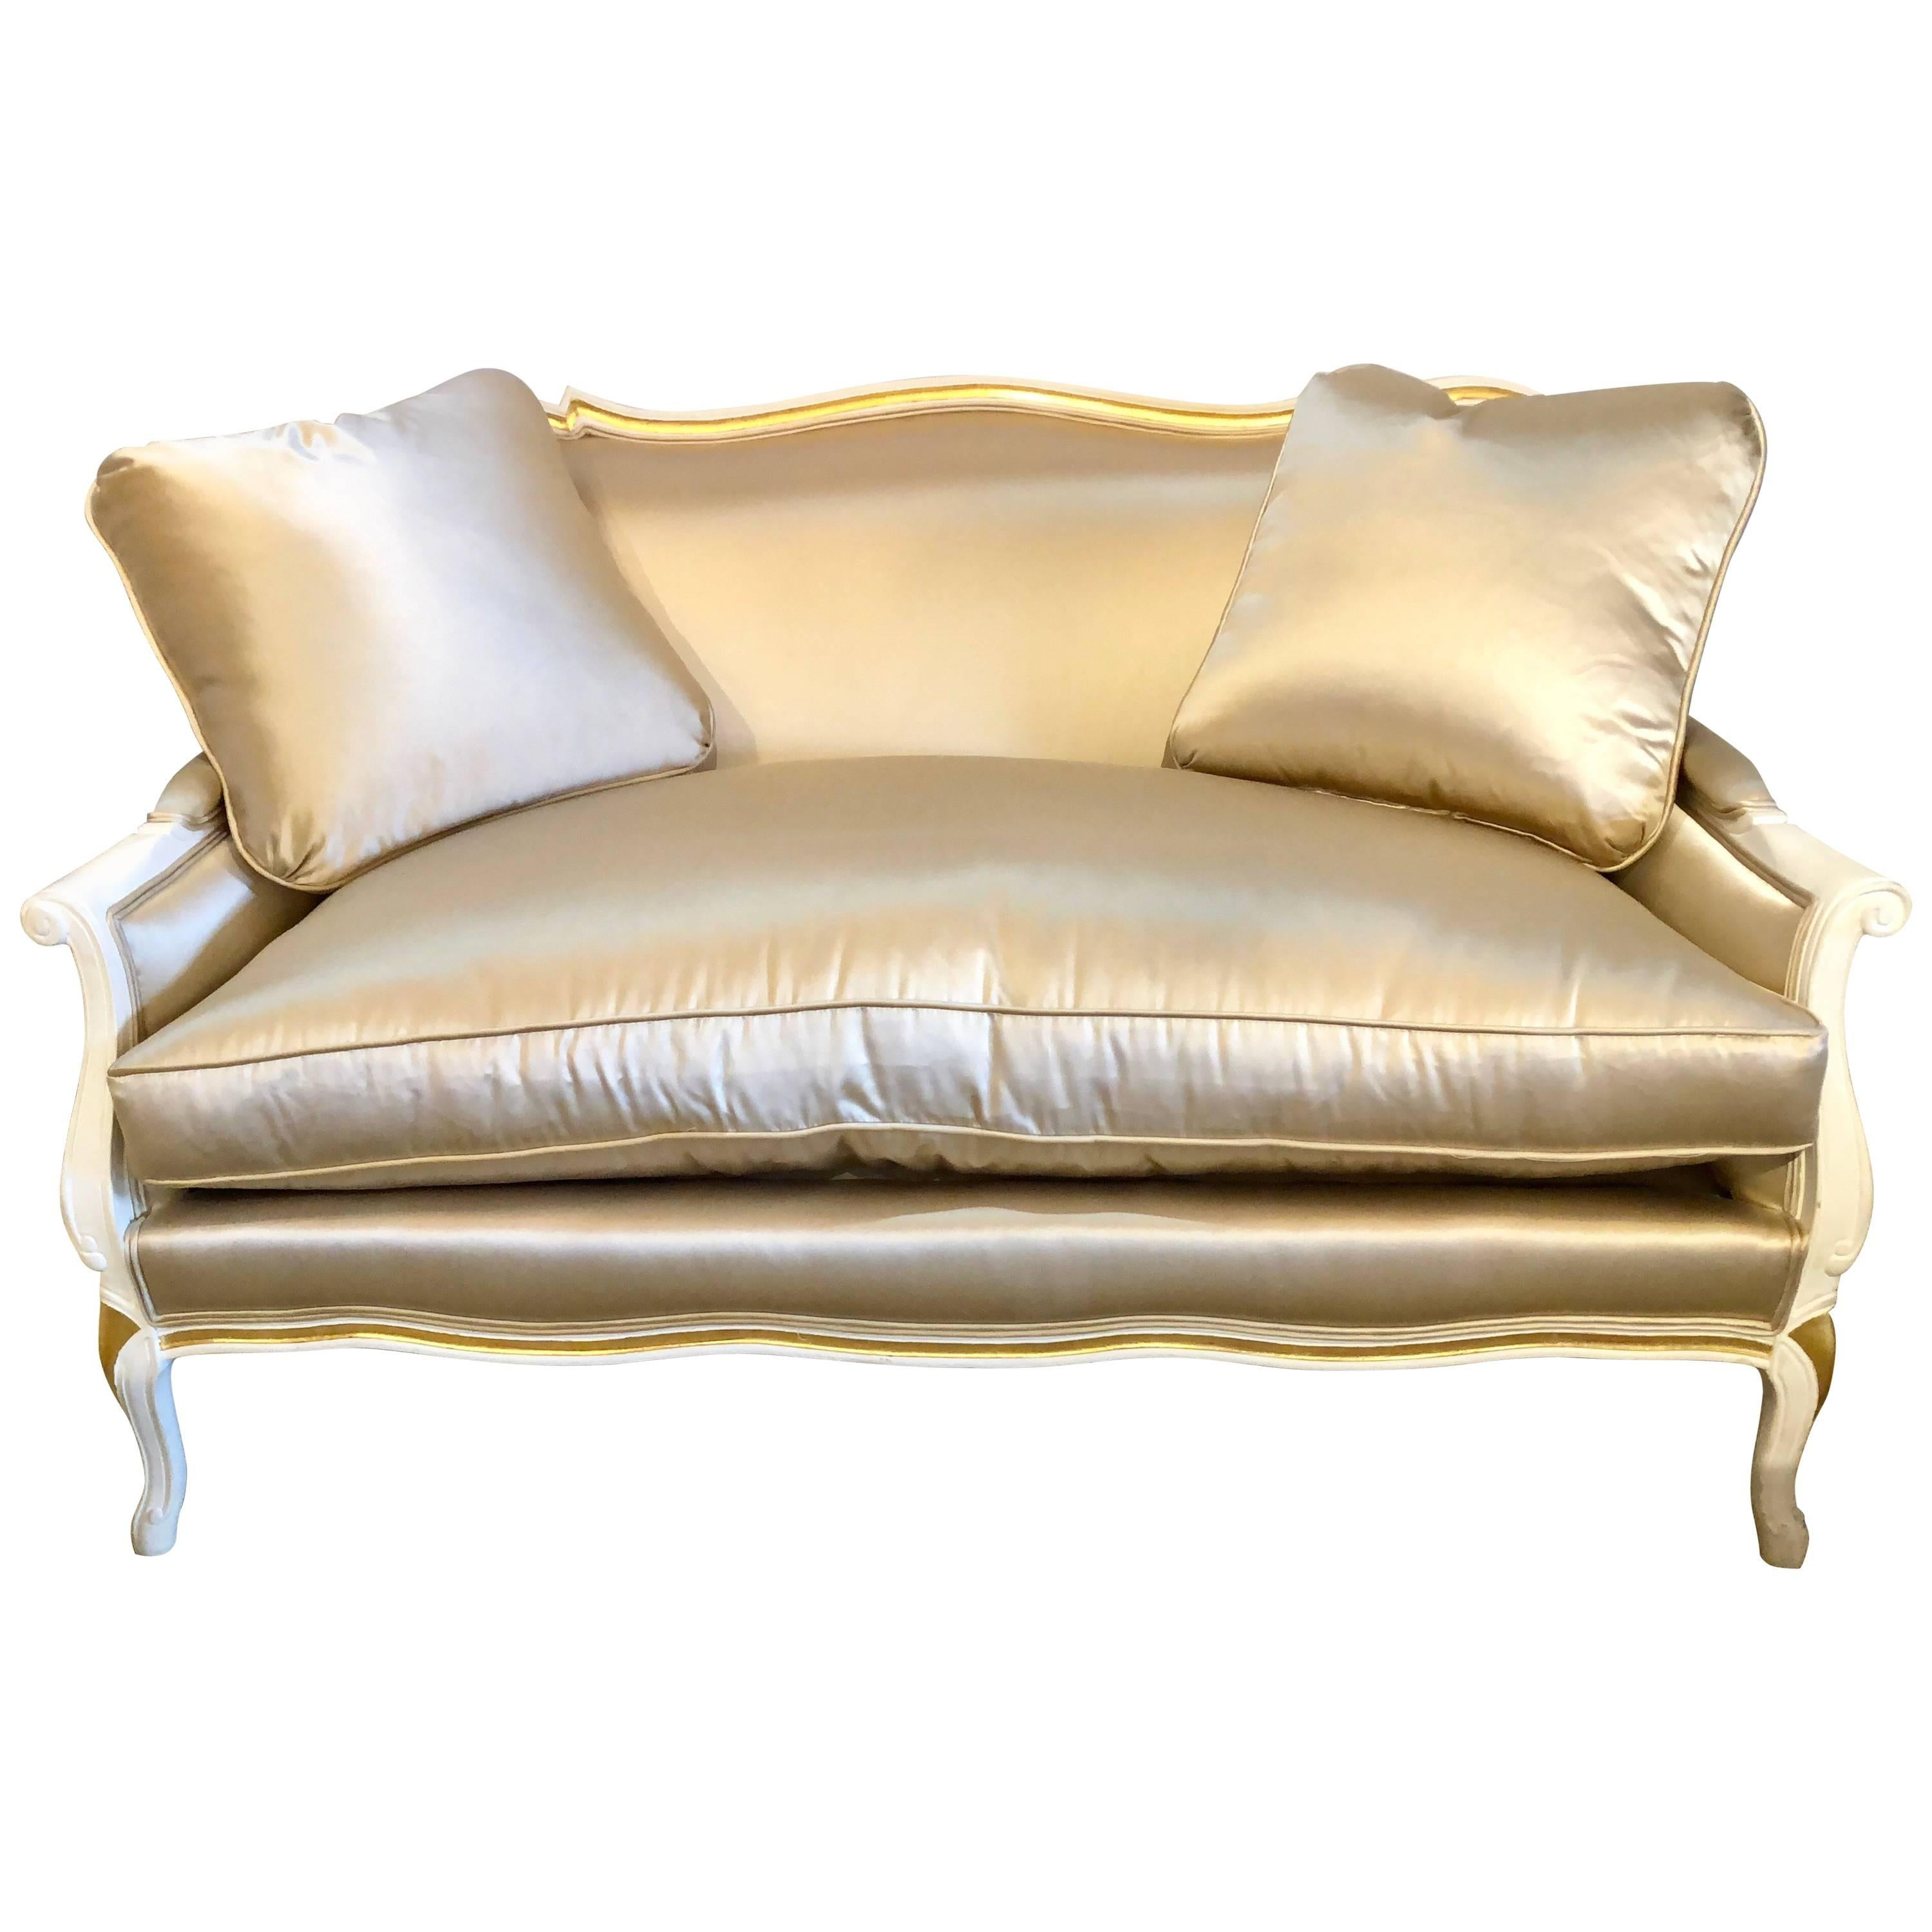 Settee Loveseat Gilt And Paint Decorated Settee Loveseat In A Fine Satin Upholstery